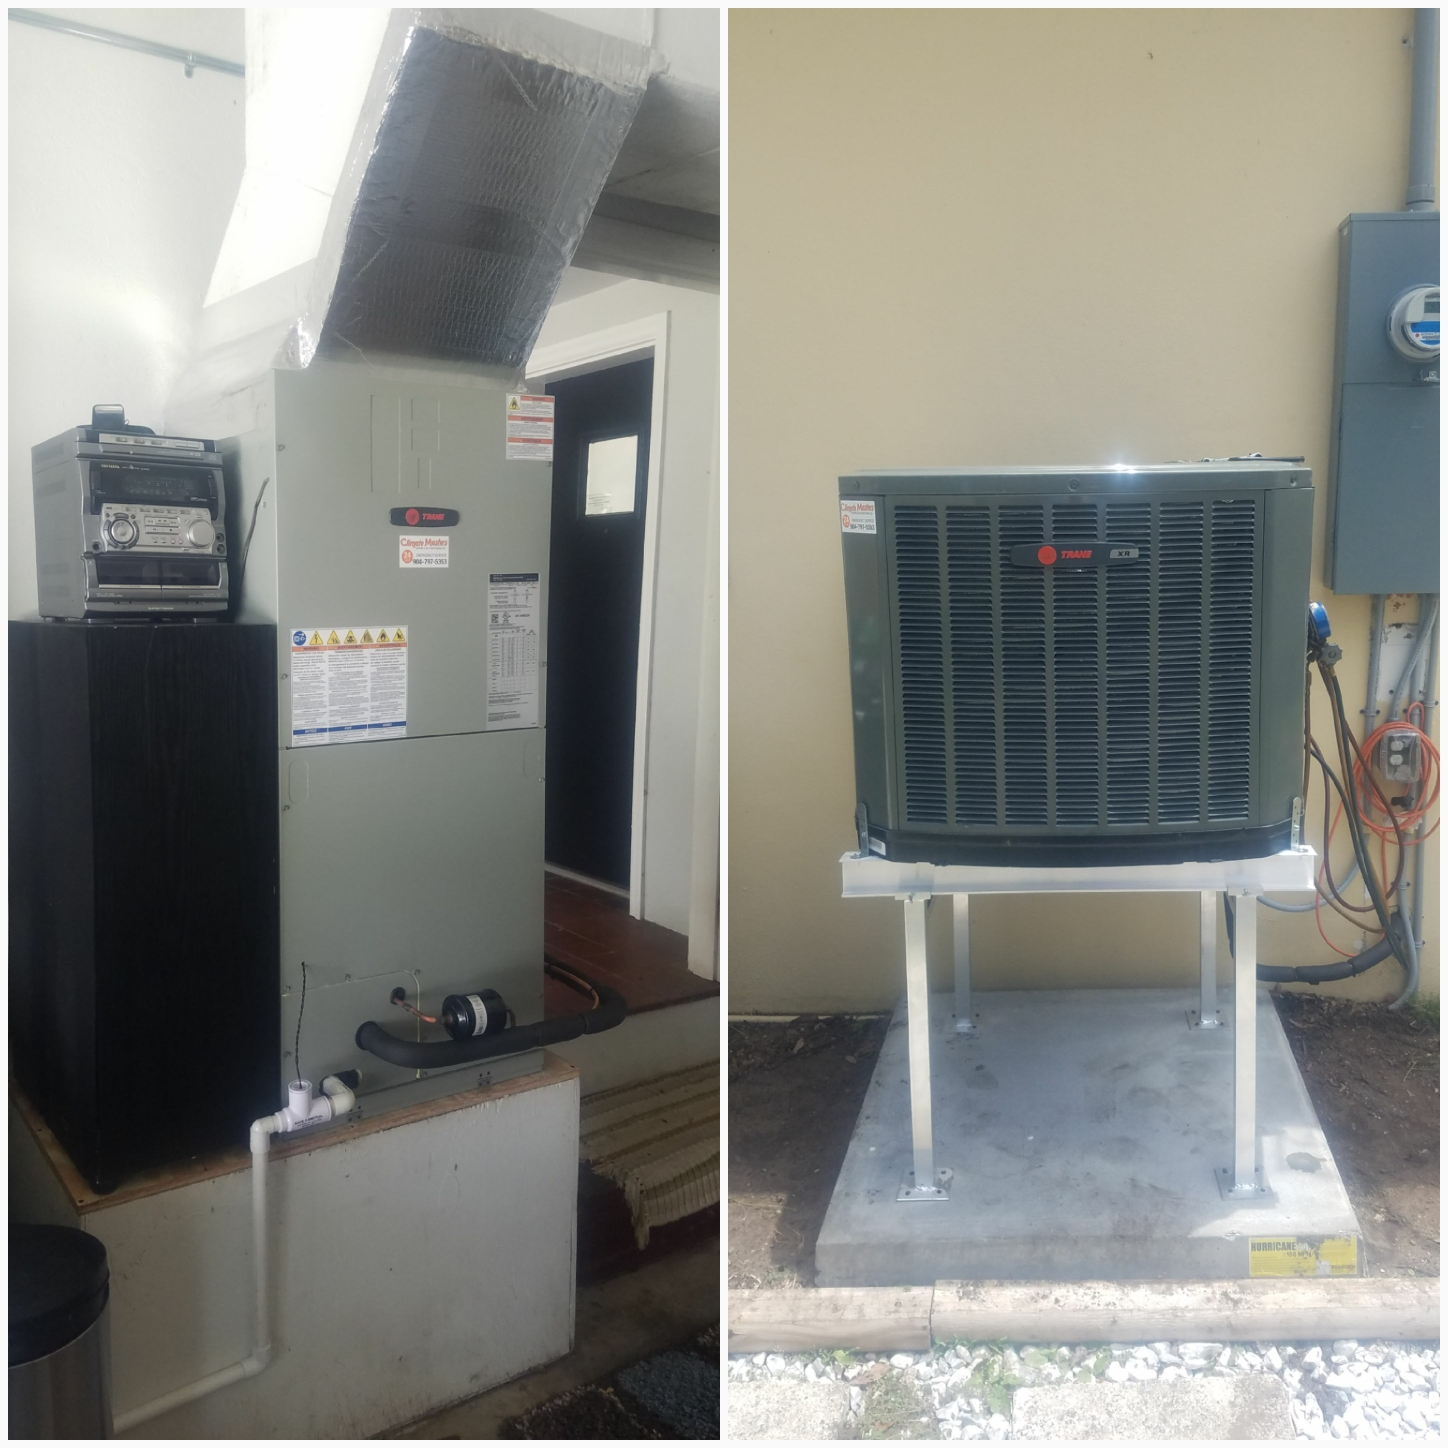 St. Augustine, FL - Installed new trane units and raised condenser on metal stand